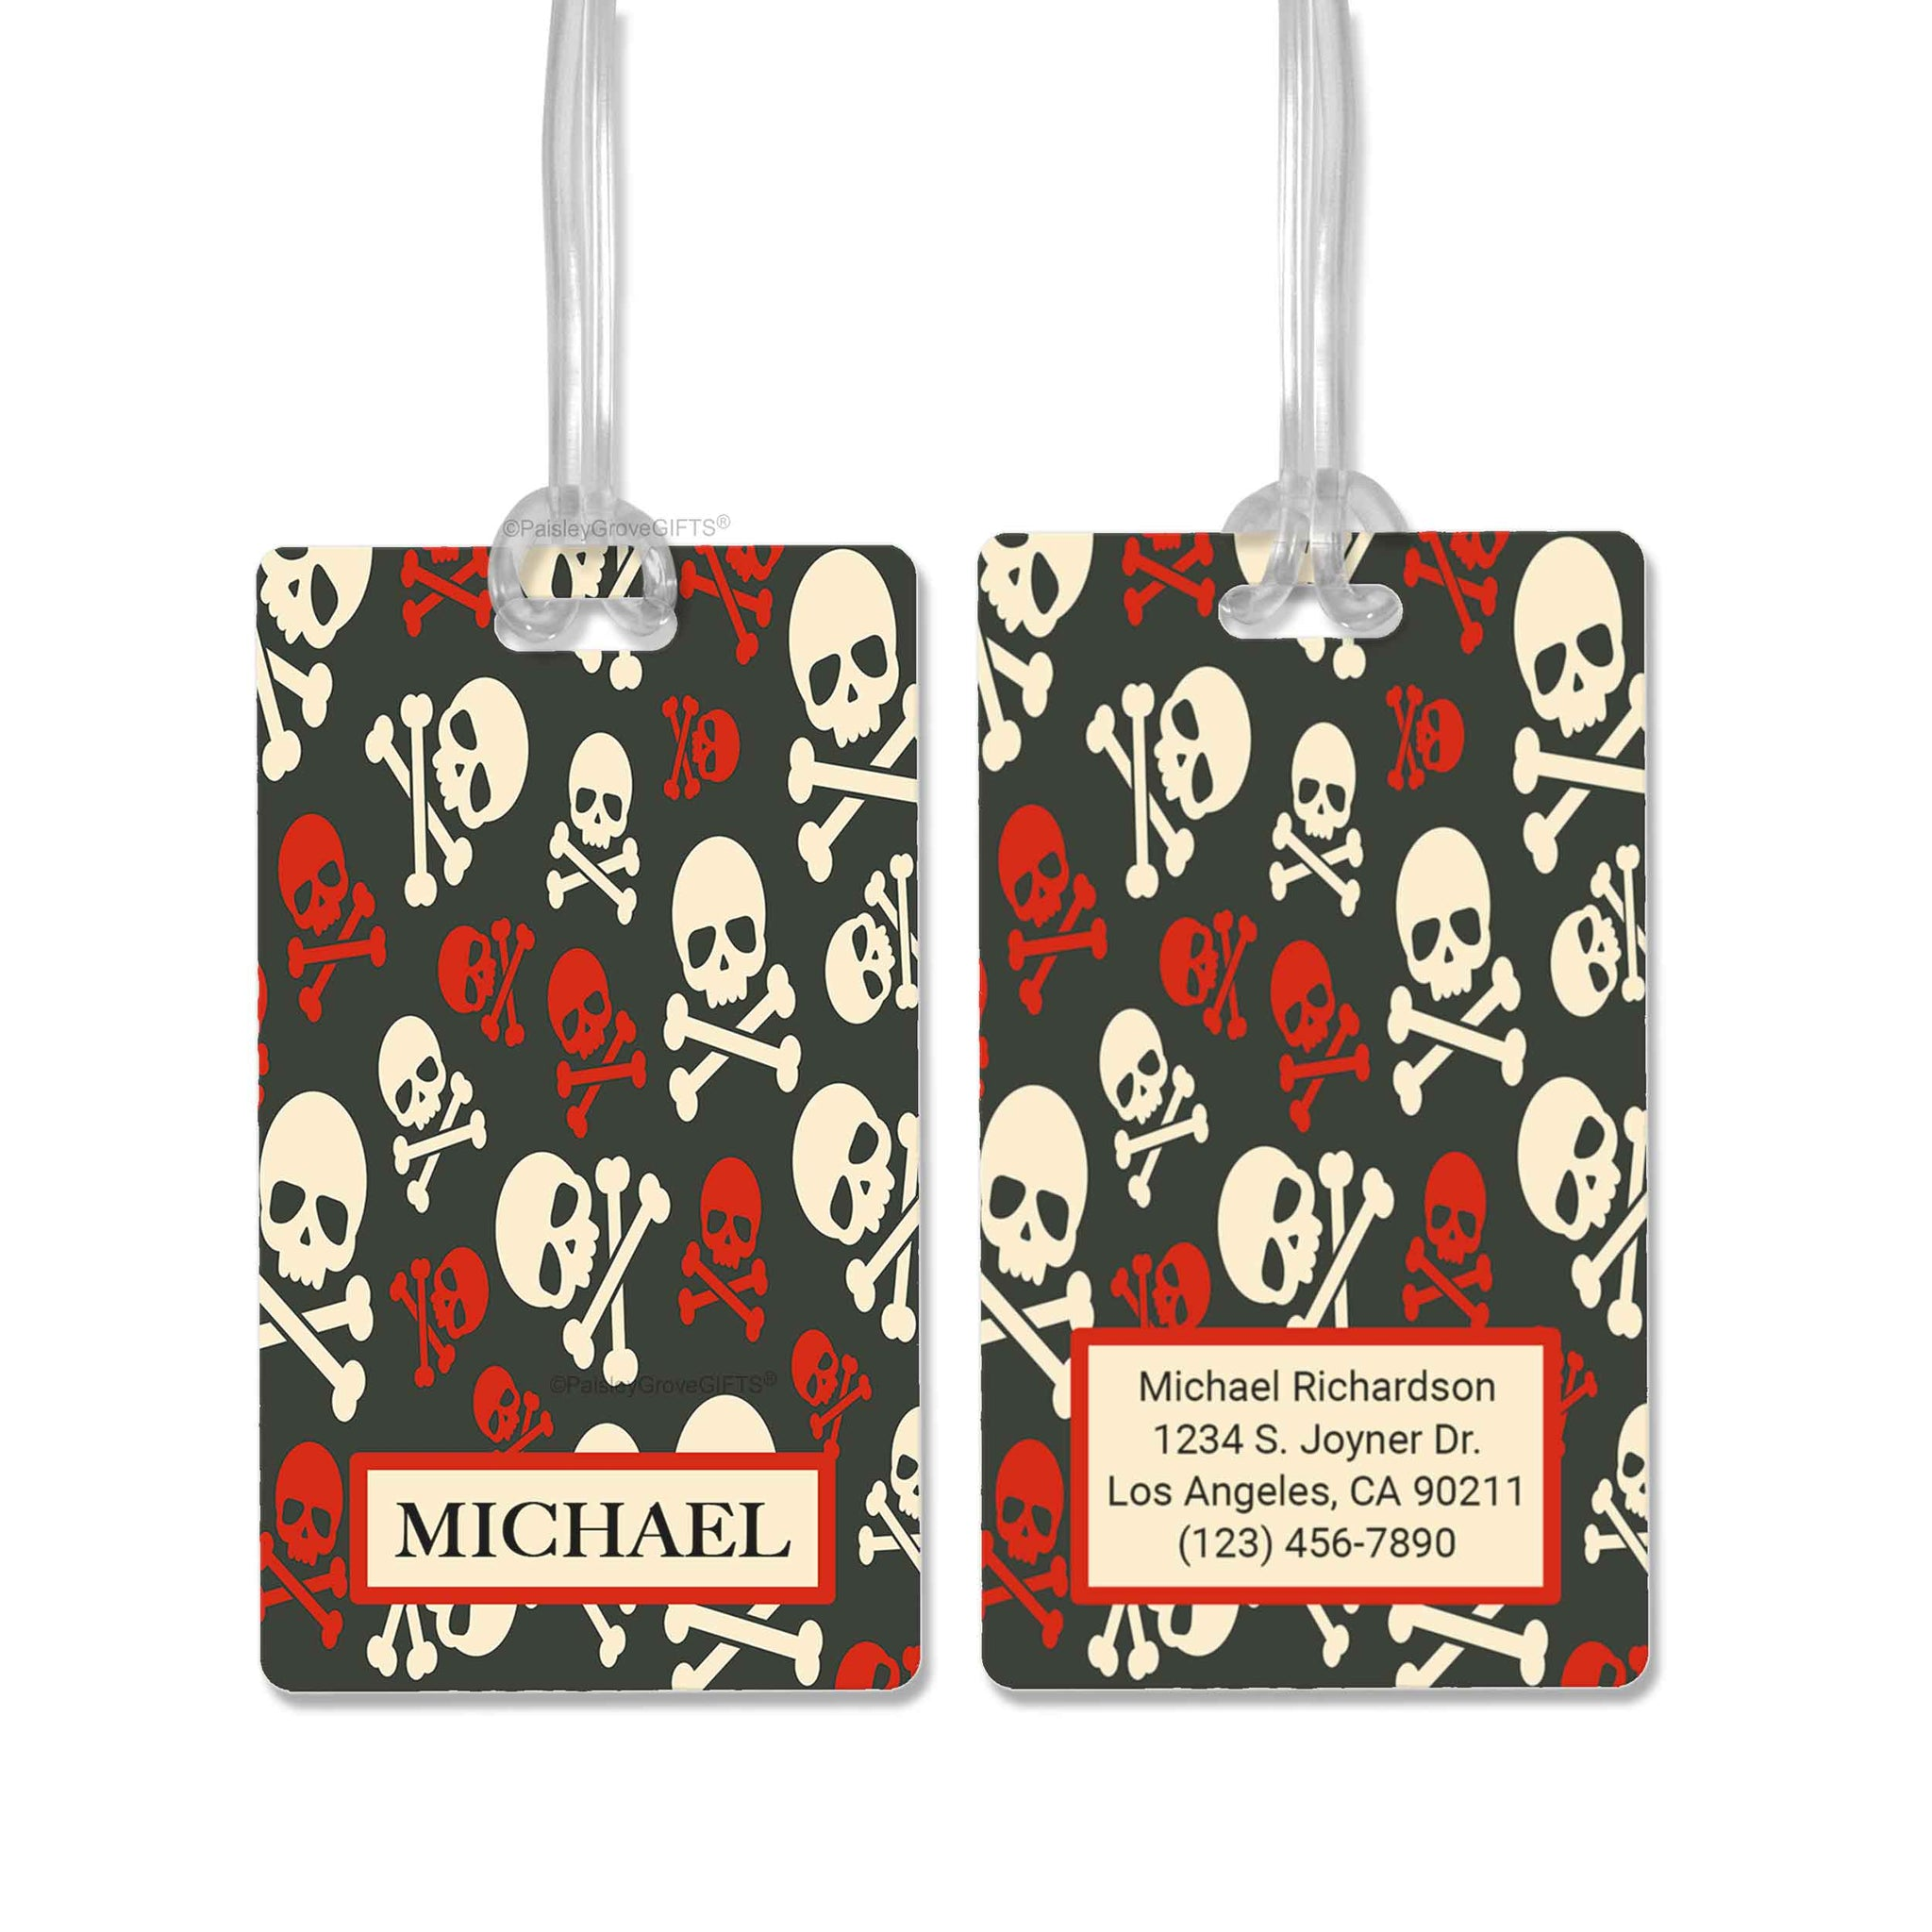 CopyrightPaisleyGroveGIFTS S152a1 Personalized luggage tag black and red pirates skull and bones